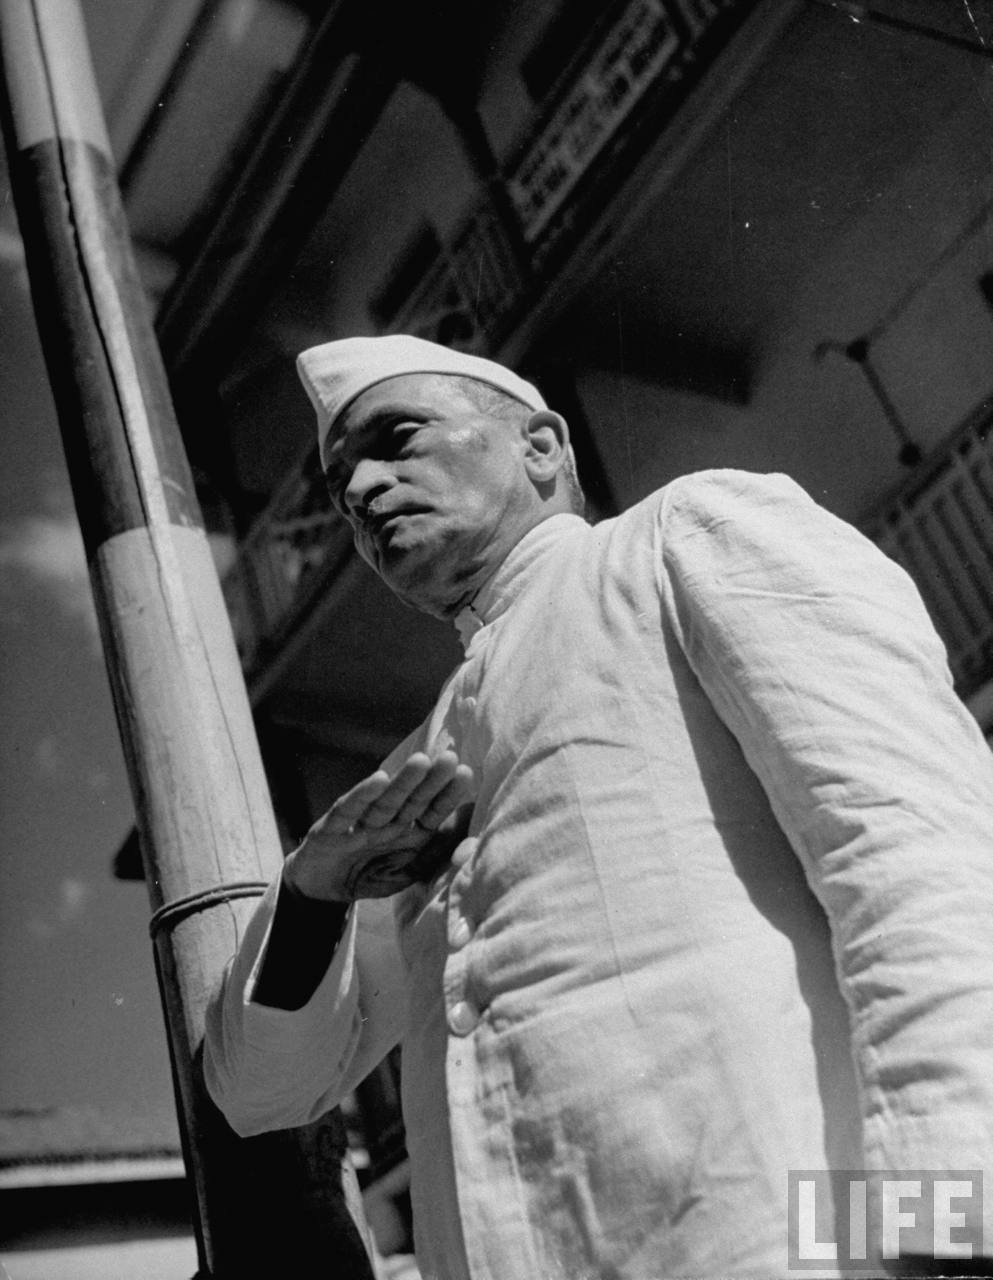 Nagindas Master, India's Congress Committee Head, saluting the Congress flag - Bombay 1946